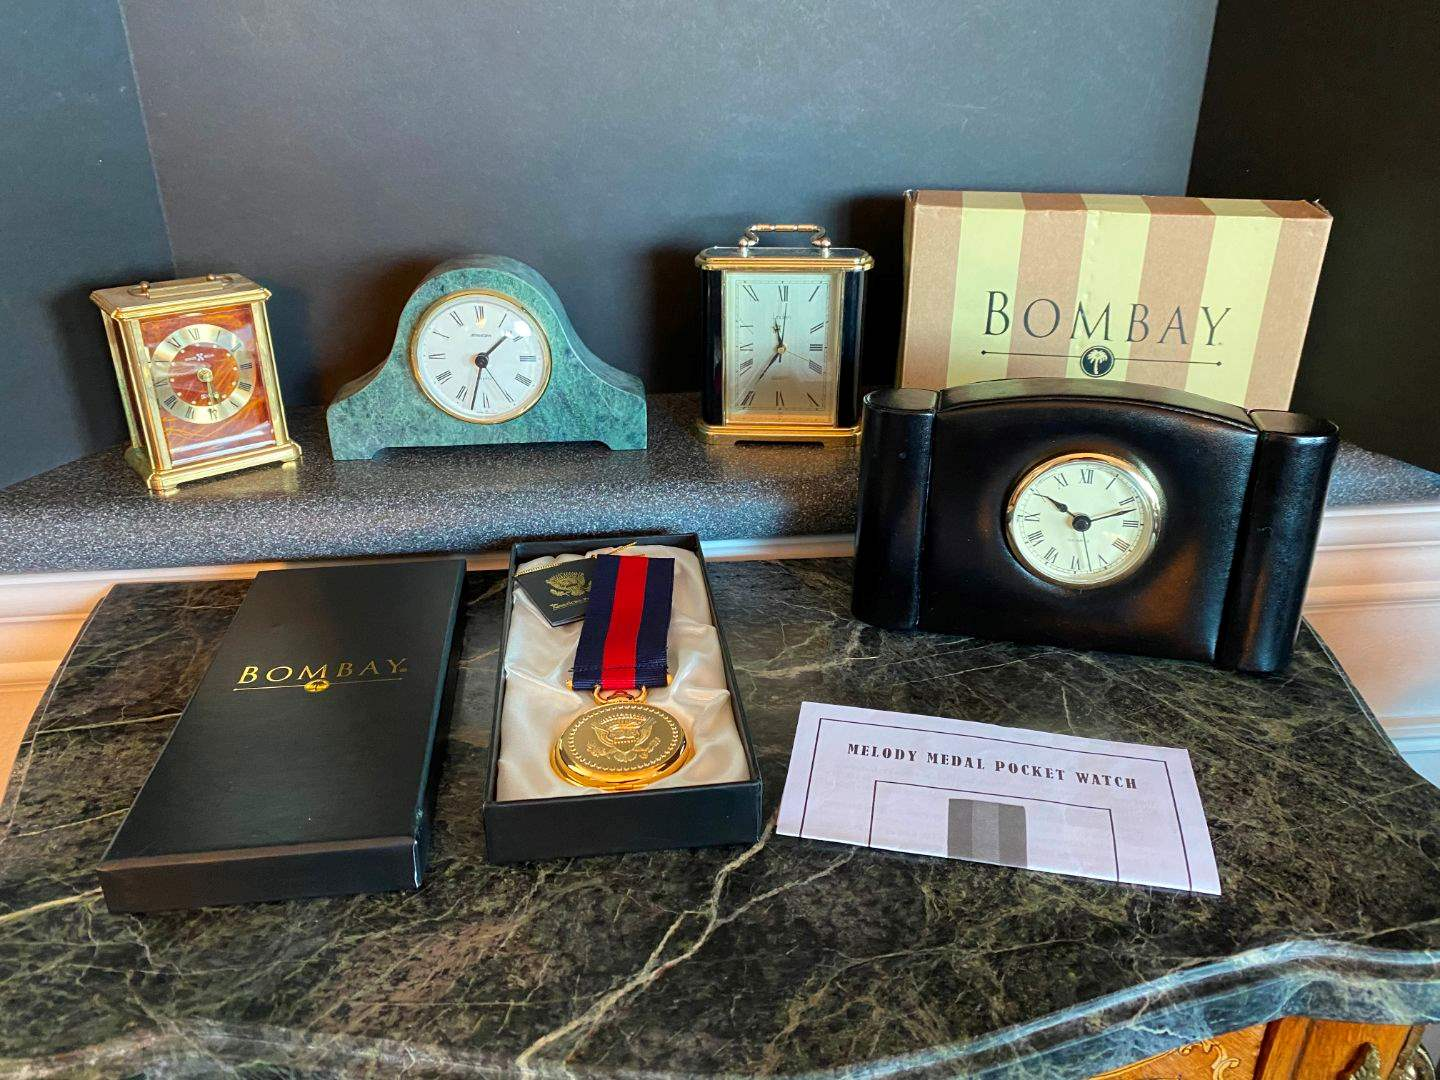 Lot # 137 - Bombay Melody Medal Pocket Watch, Small Bombay Clock, Howard Miller Clock, Staiger Marble Clock & More.. (main image)